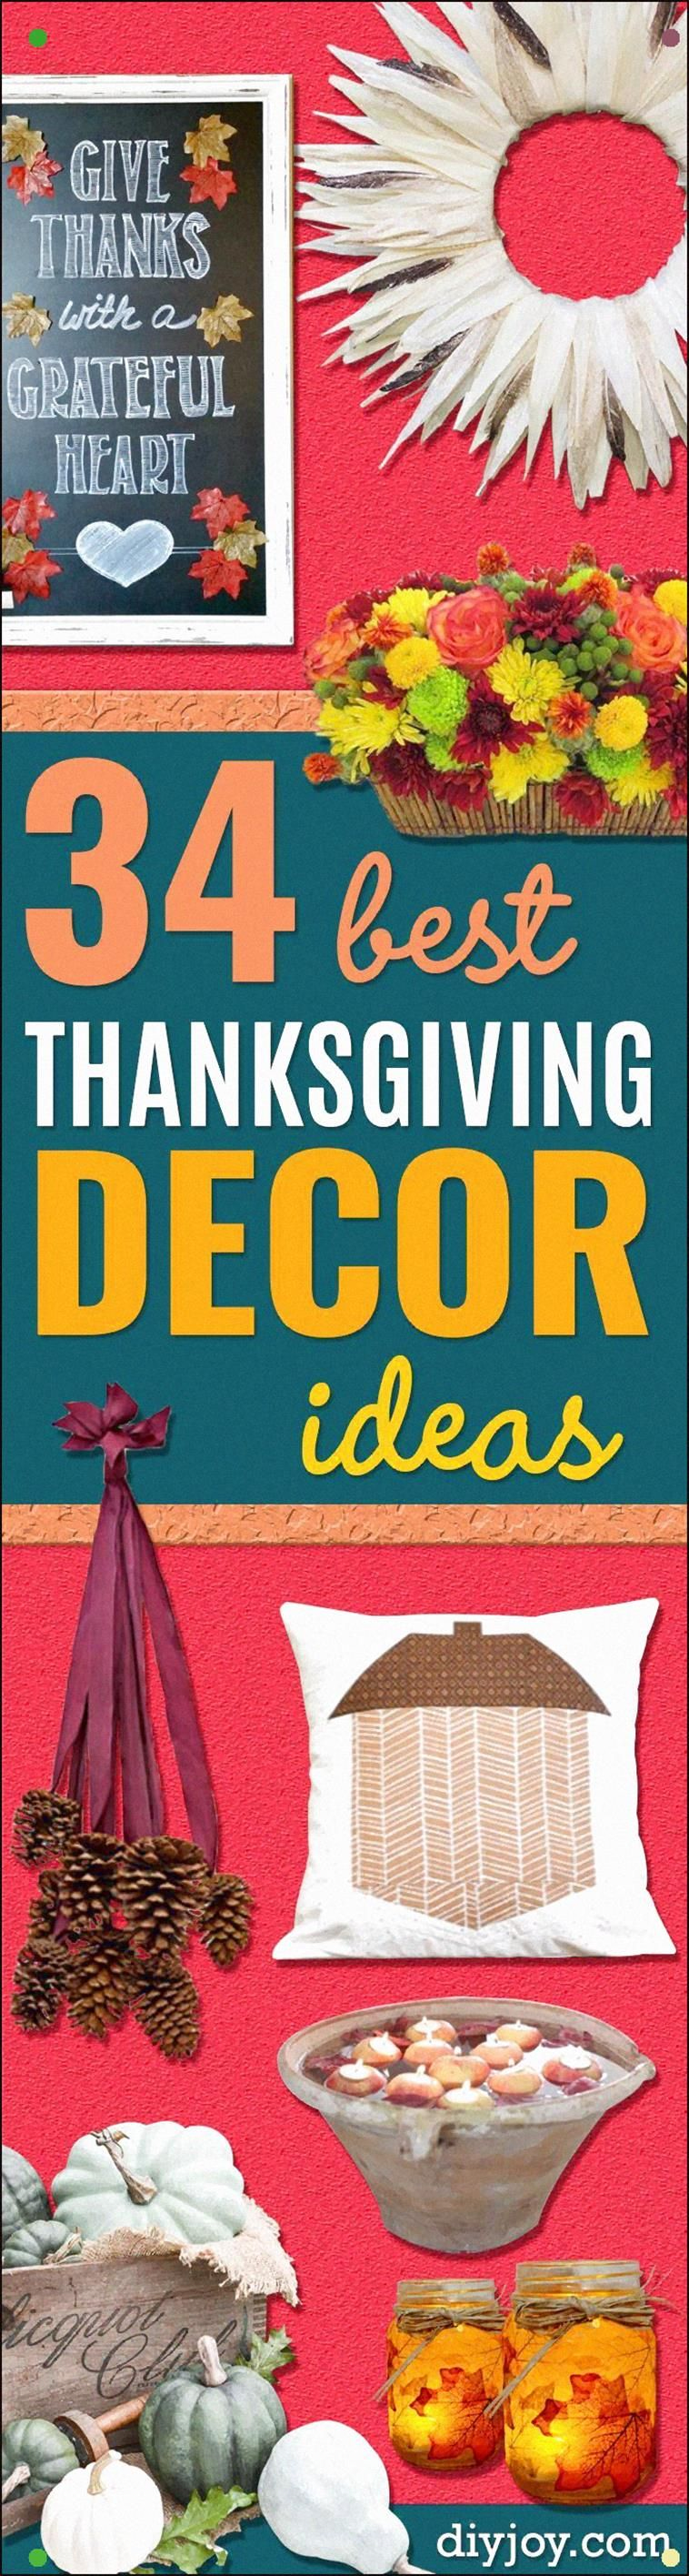 Diy Thanksgiving Decor Ideas – Fall Projects And Crafts For Thanksgiving Dinner …